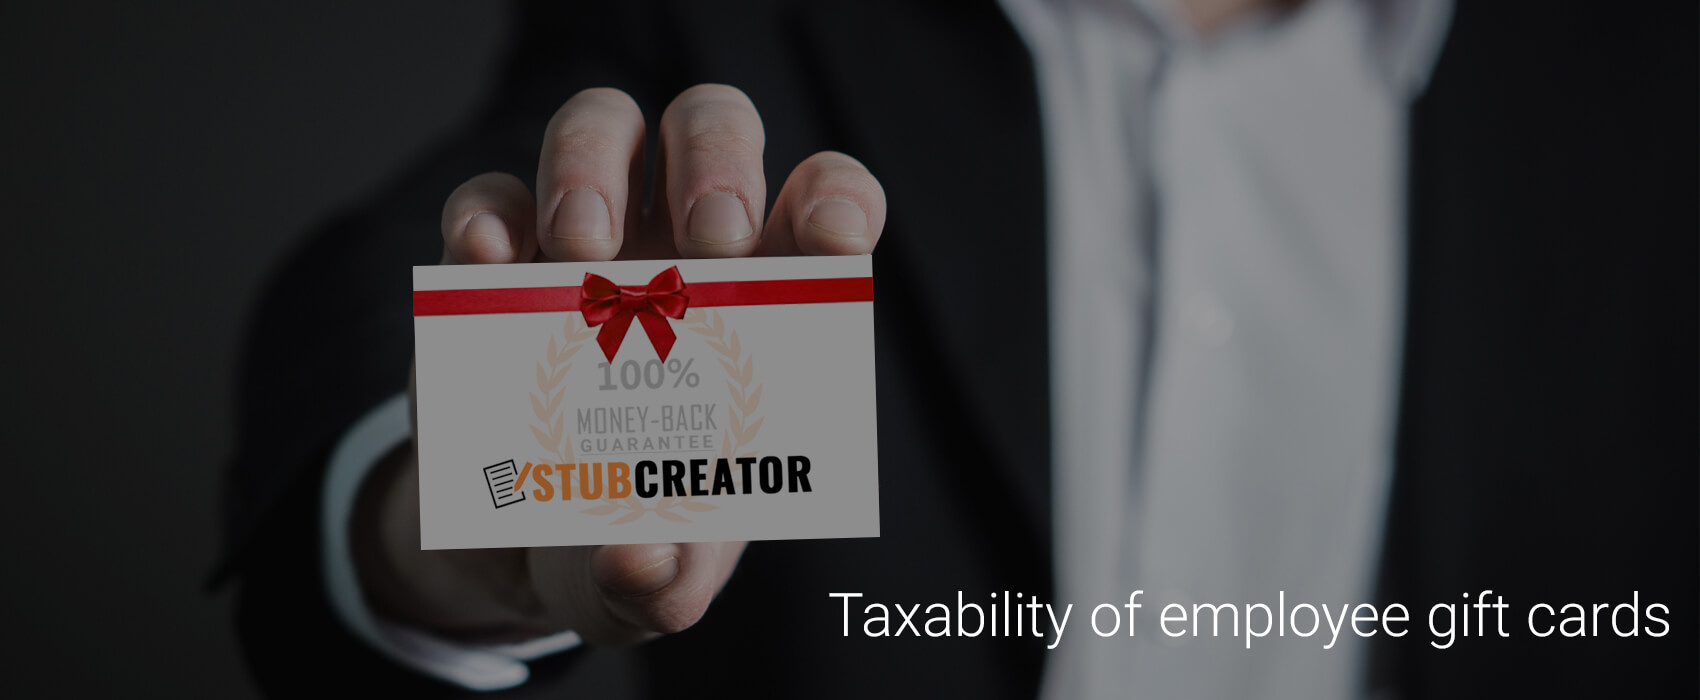 Taxability of employee gift cards